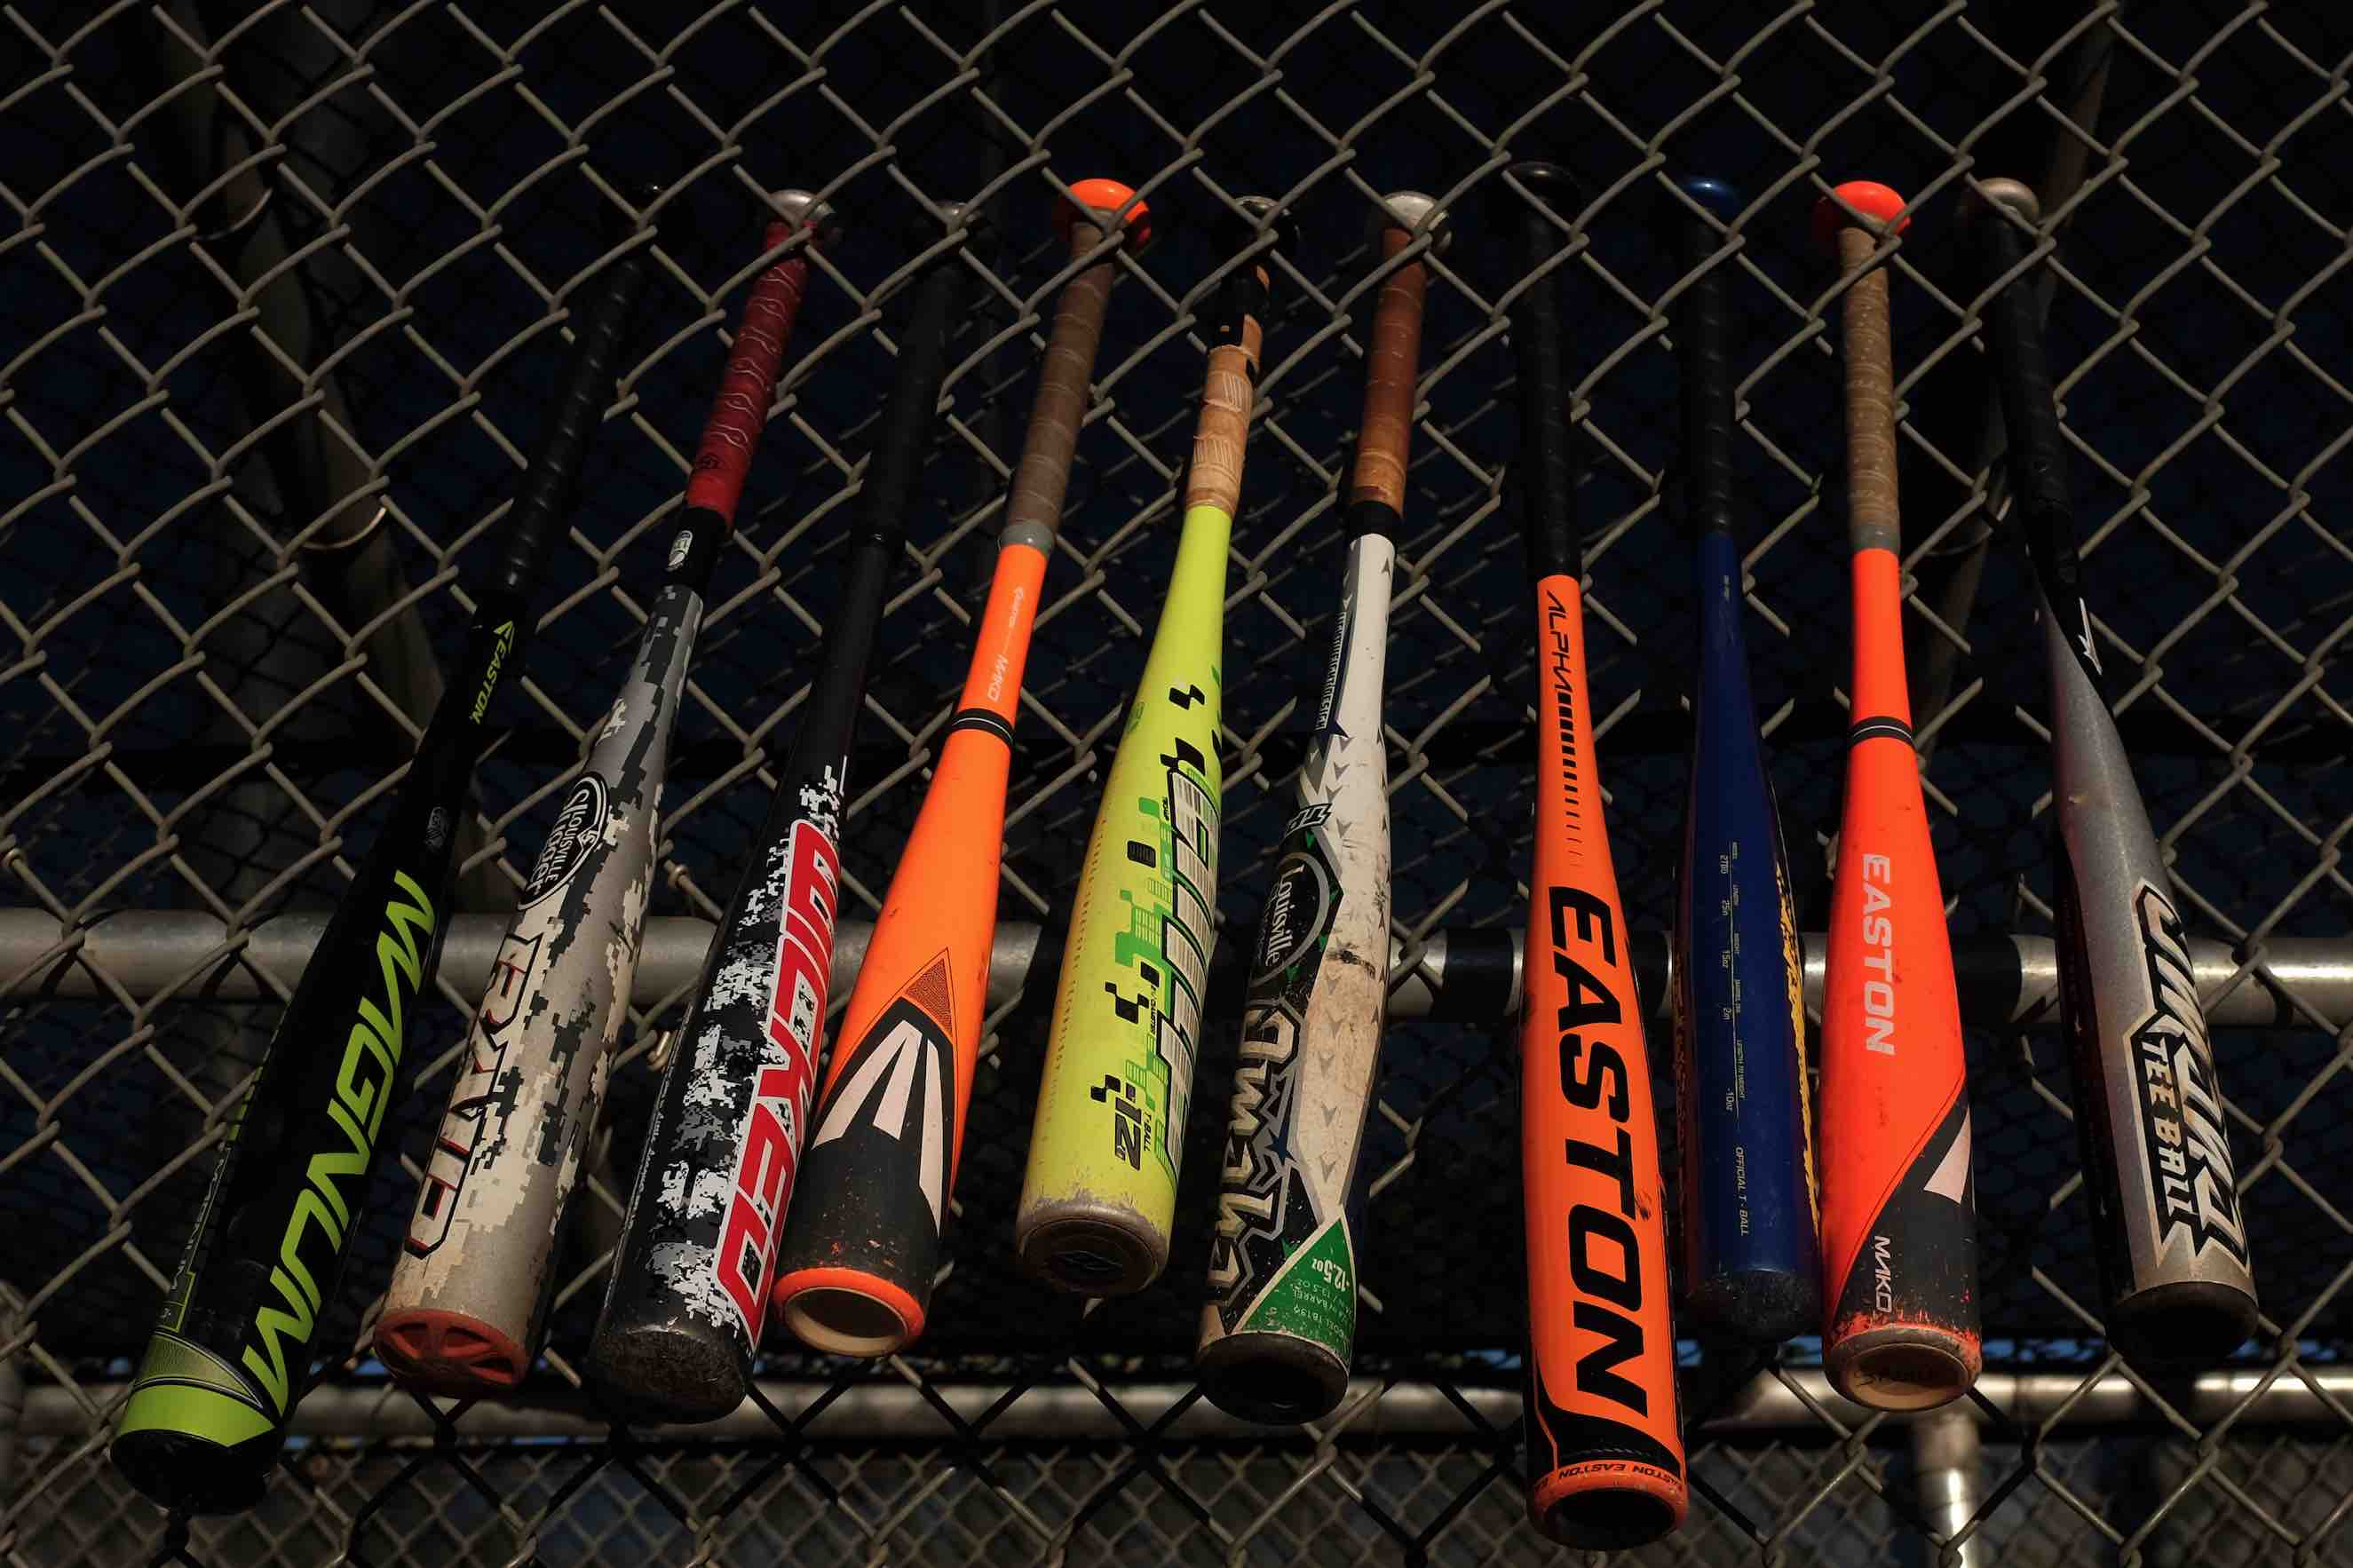 Baseball Bats hanging on a chainlink fence.